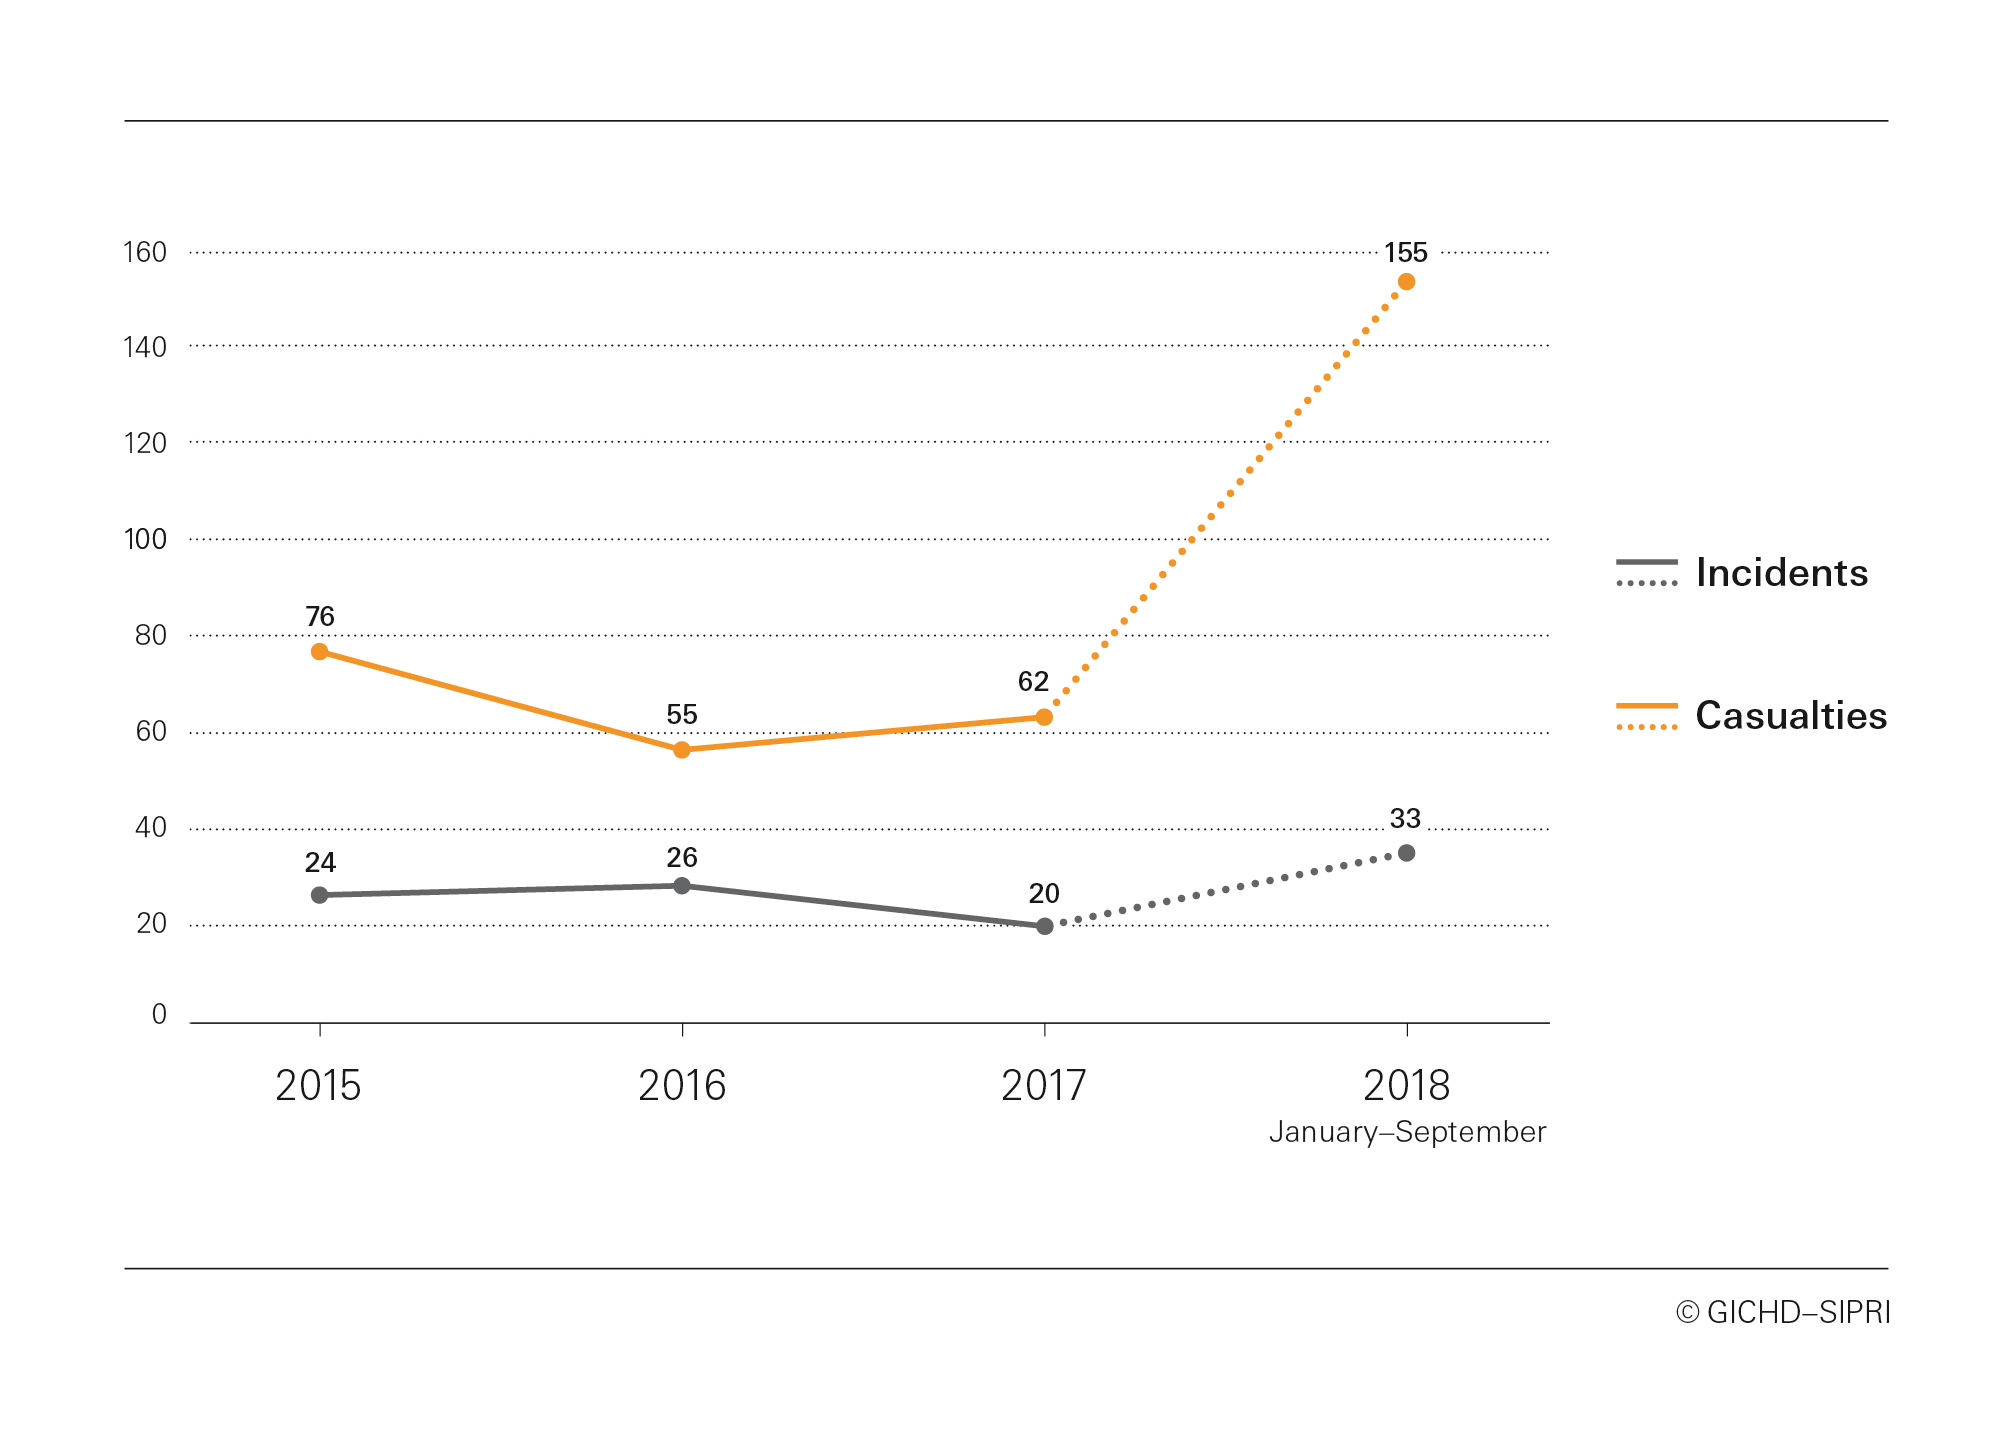 Figure 2. AVM incidents and casualties in Mali, January 2015-September 2018